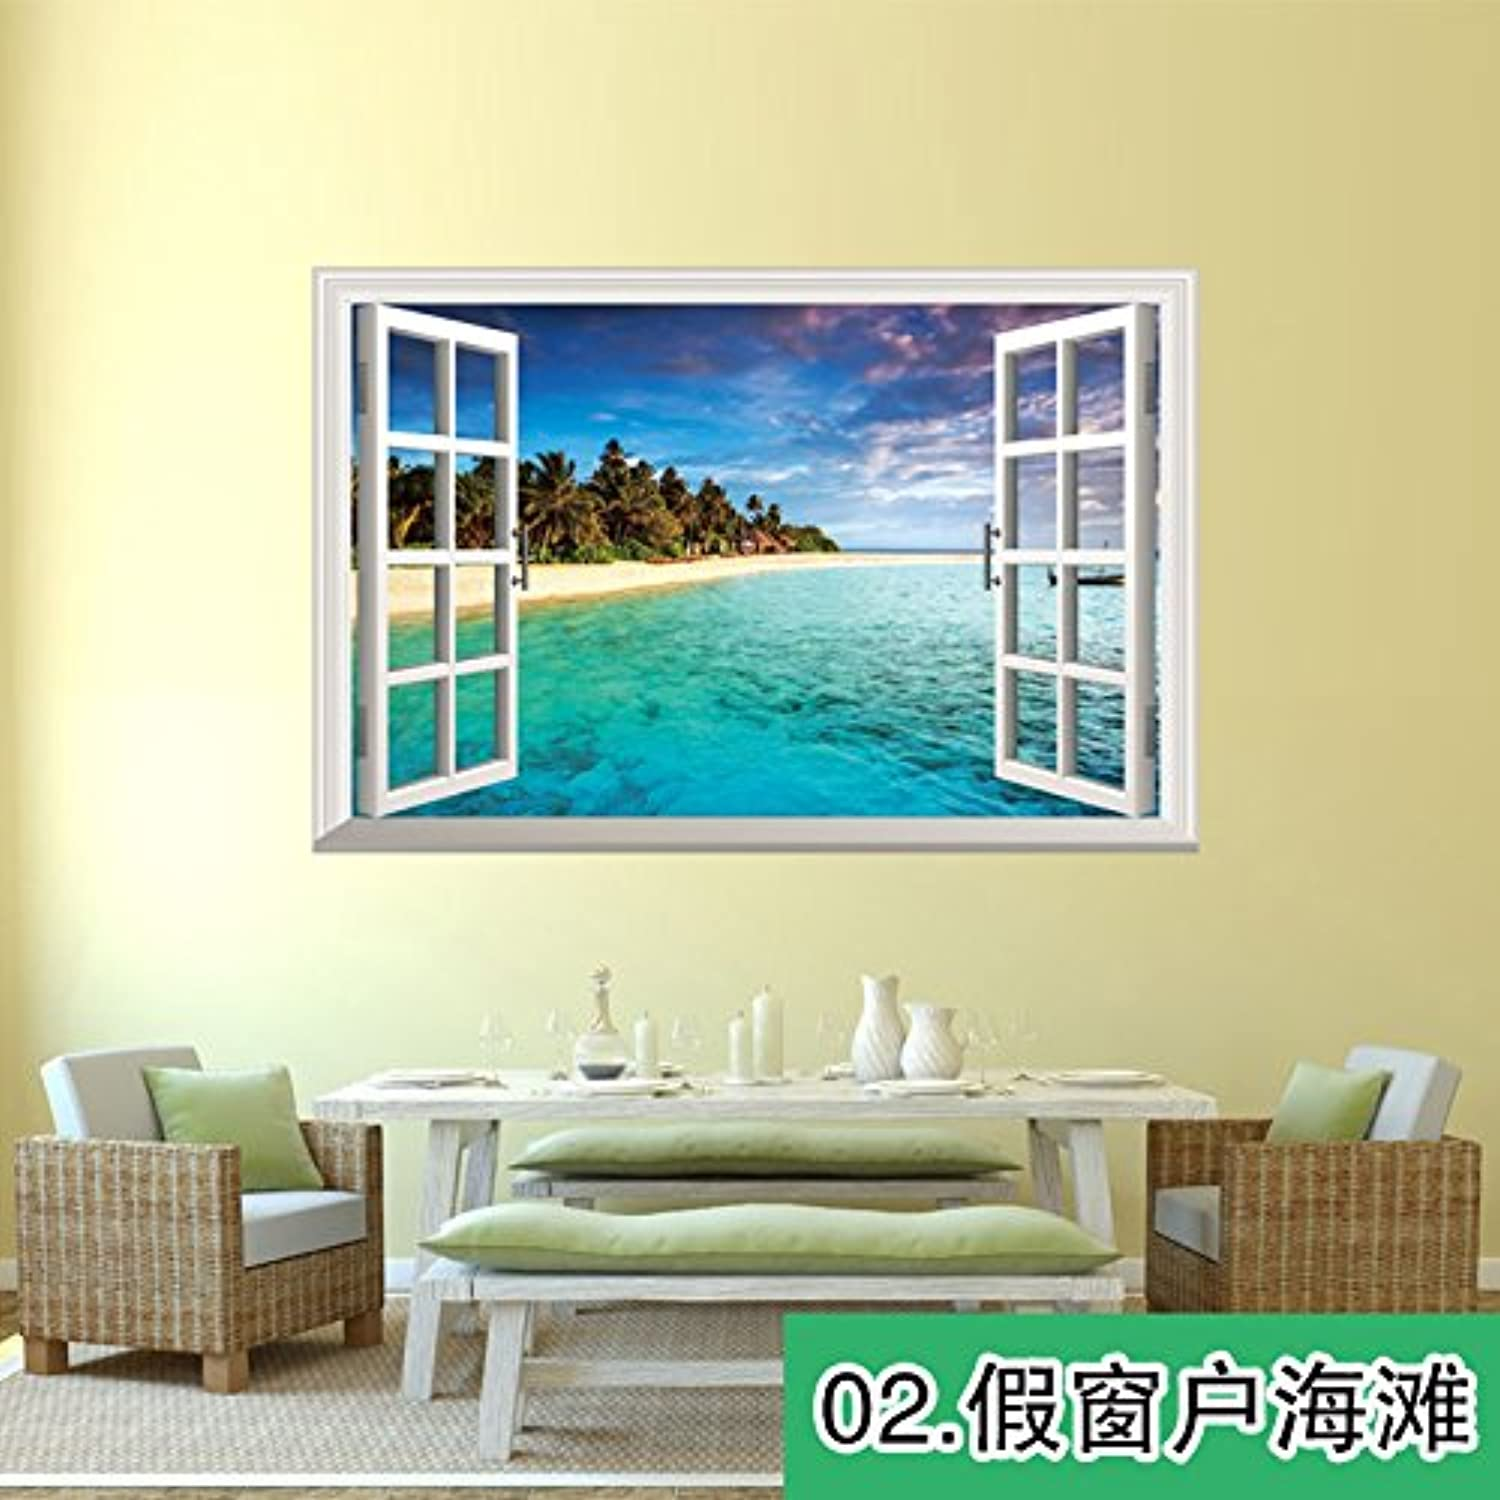 Znzbzt 3D Wall Posters self Adhesive Wallpaper Decorated with Posters and Stickers to Leave Windows 2